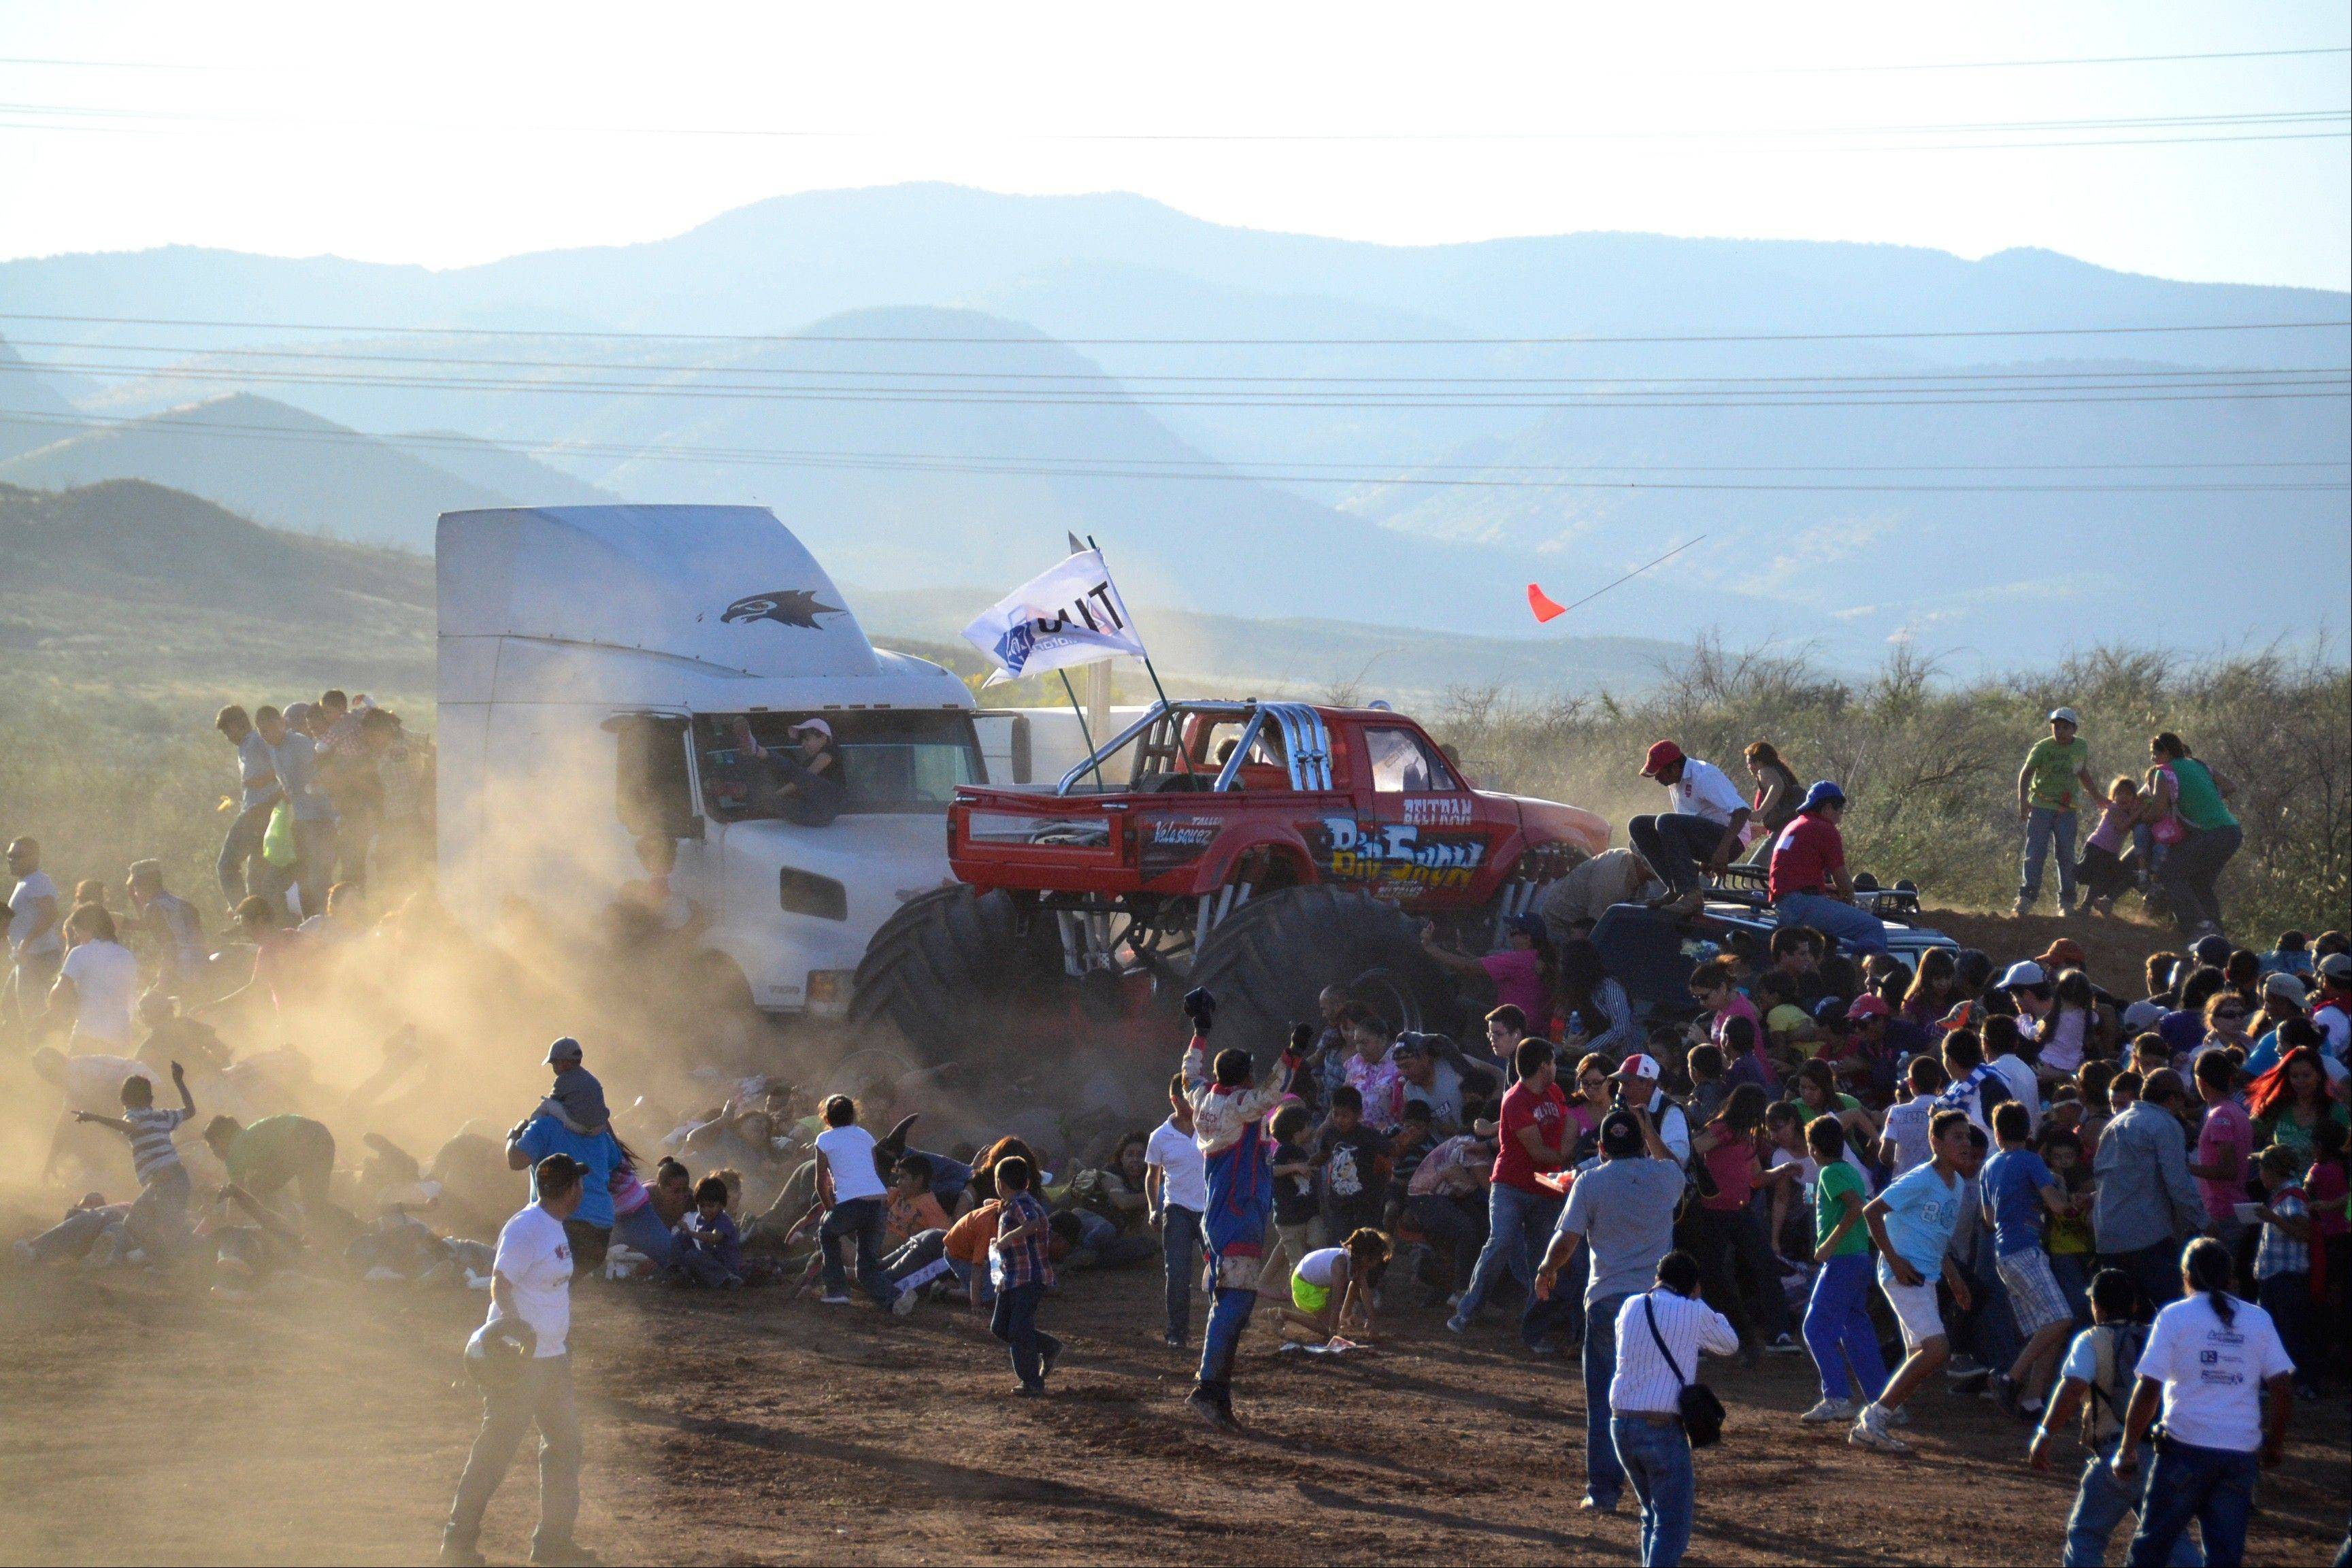 People run as an out of control monster truck plows through a crowd of spectators at a Mexican air show in the city of Chihuahua, Mexico, Saturday. According to authorities, at least 8 people were killed and dozens were injured.